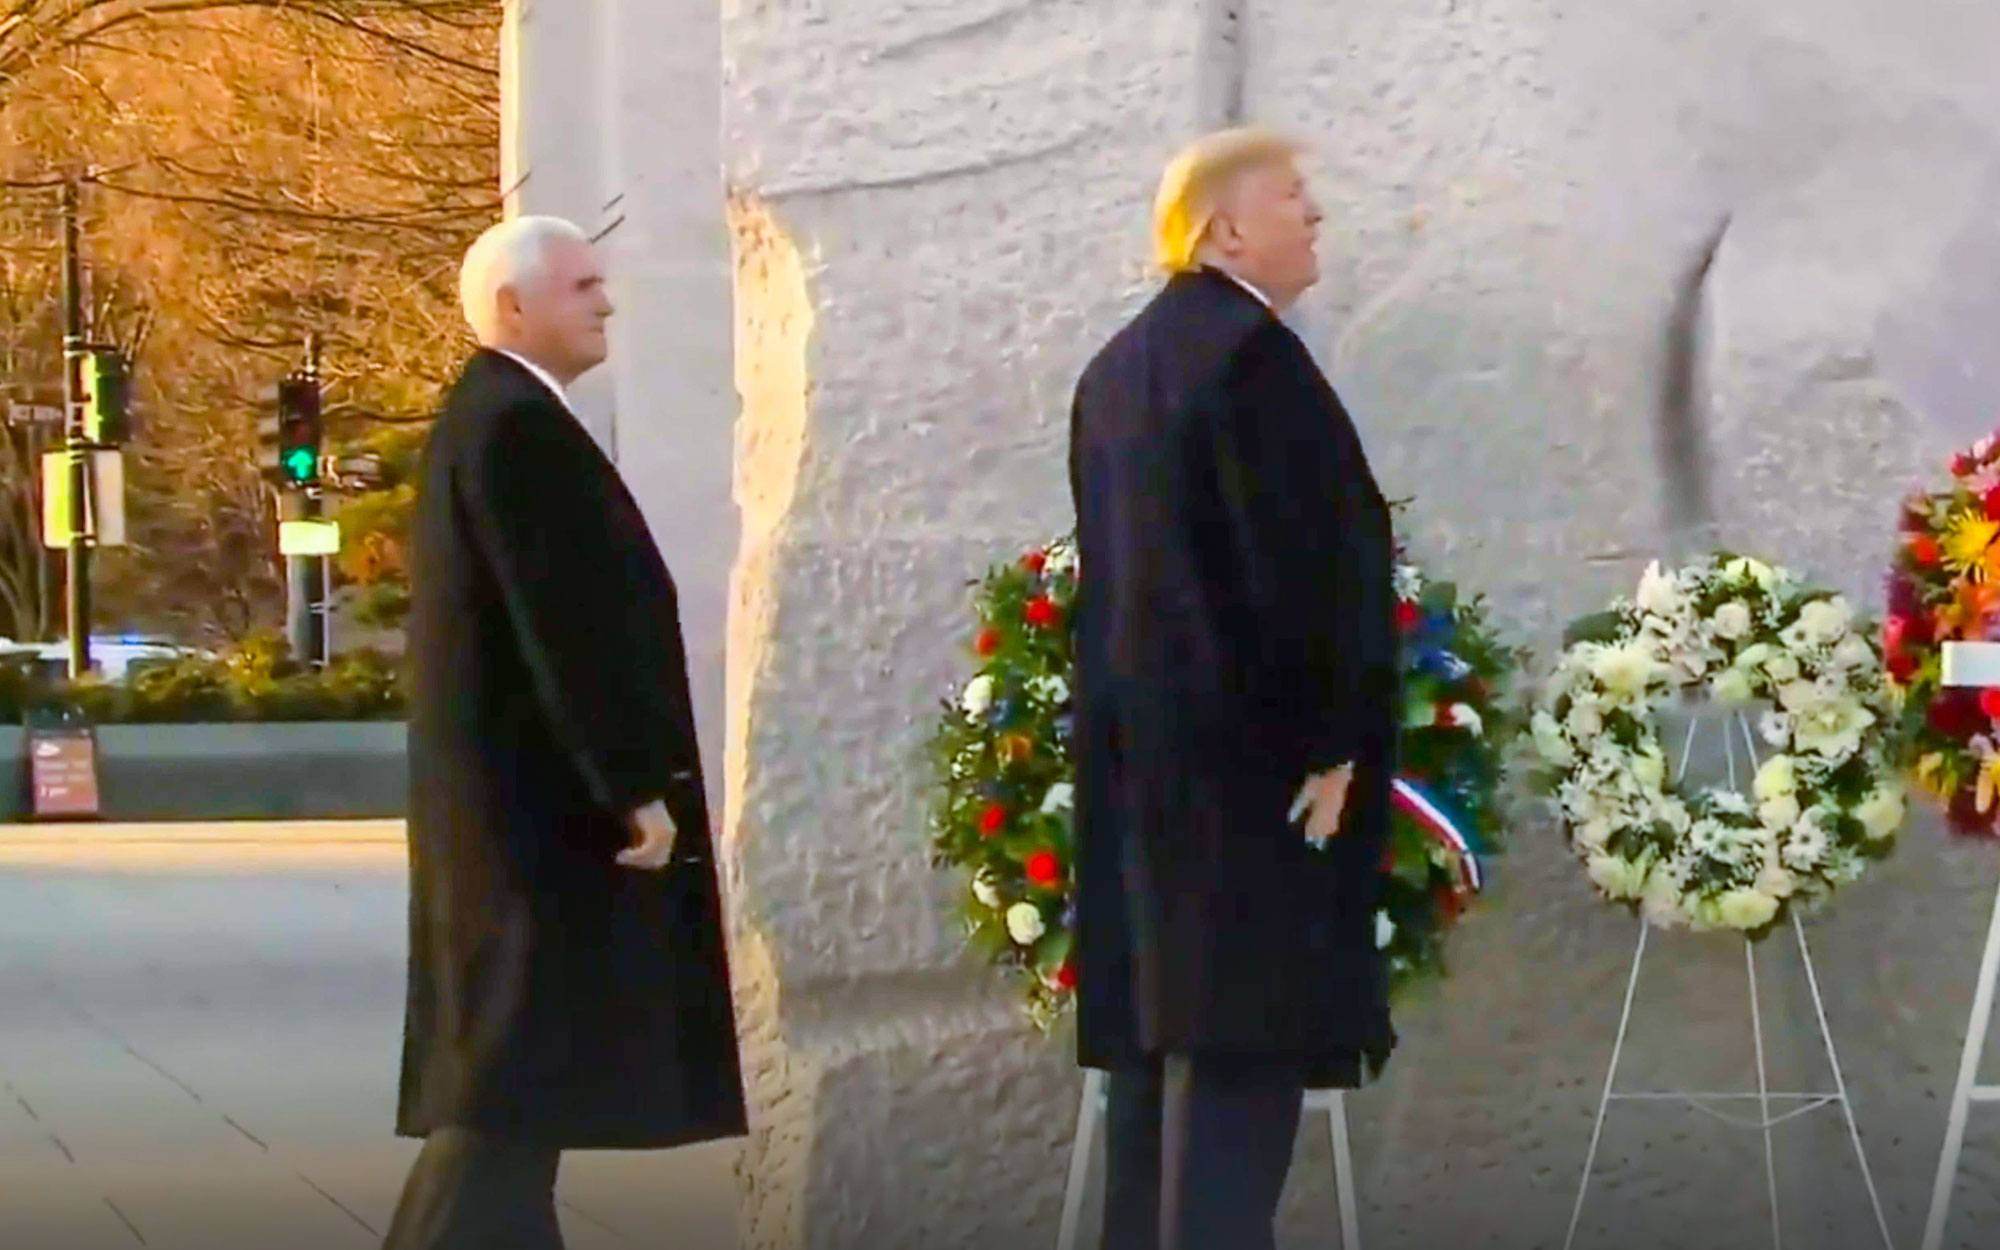 Liberals Shamelessly Boo President Trump and Vice President Pence During Visit to MLK Memorial